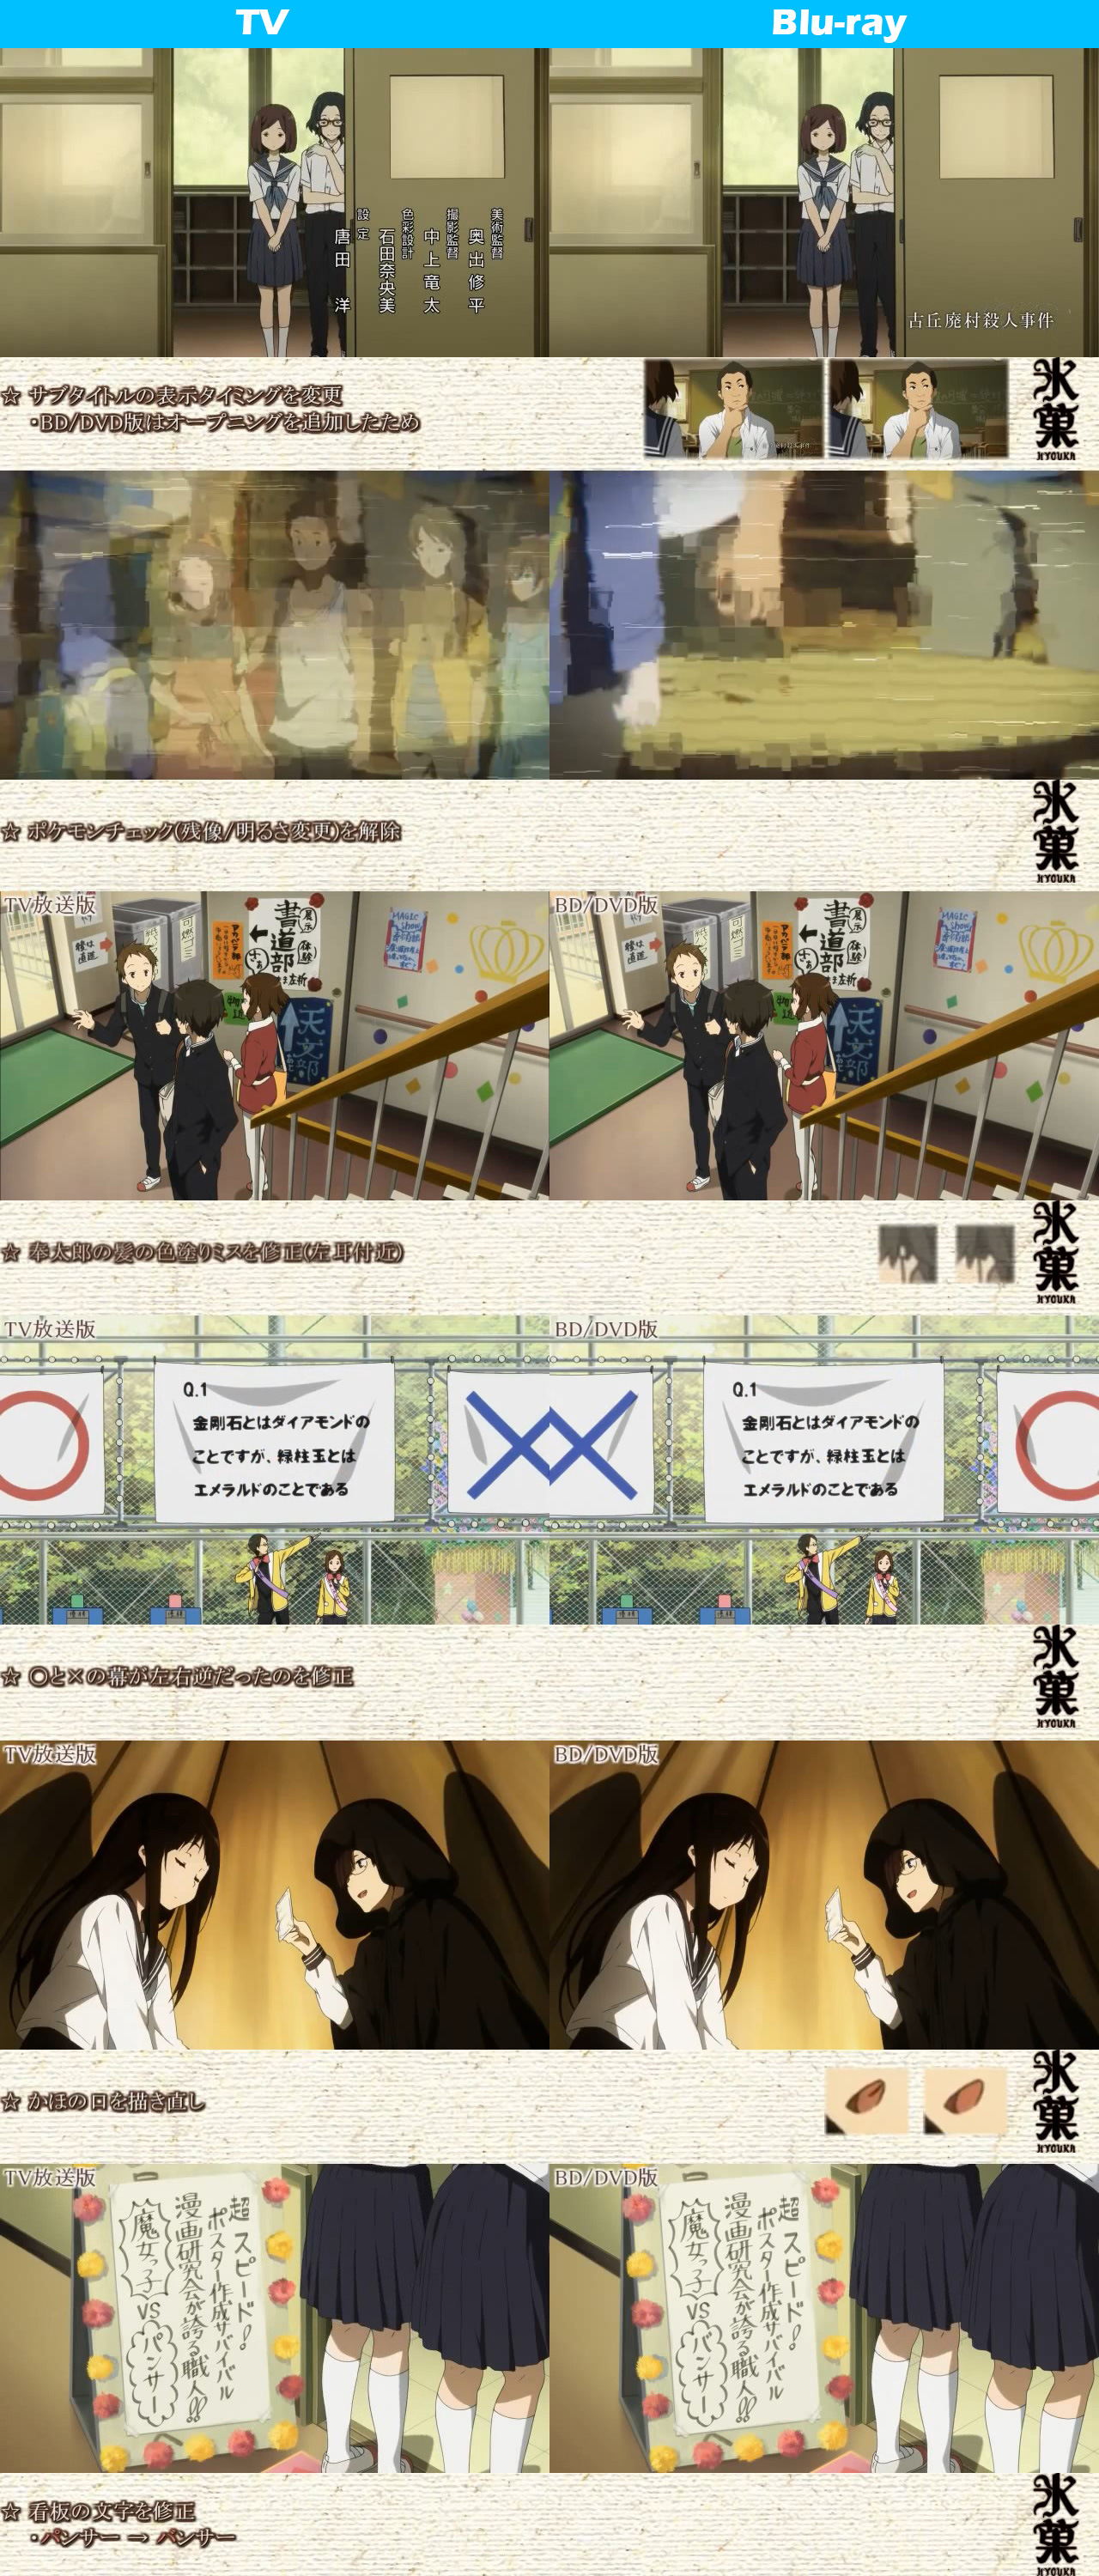 TV vs Blu-ray Comparison Hyouka anime 4